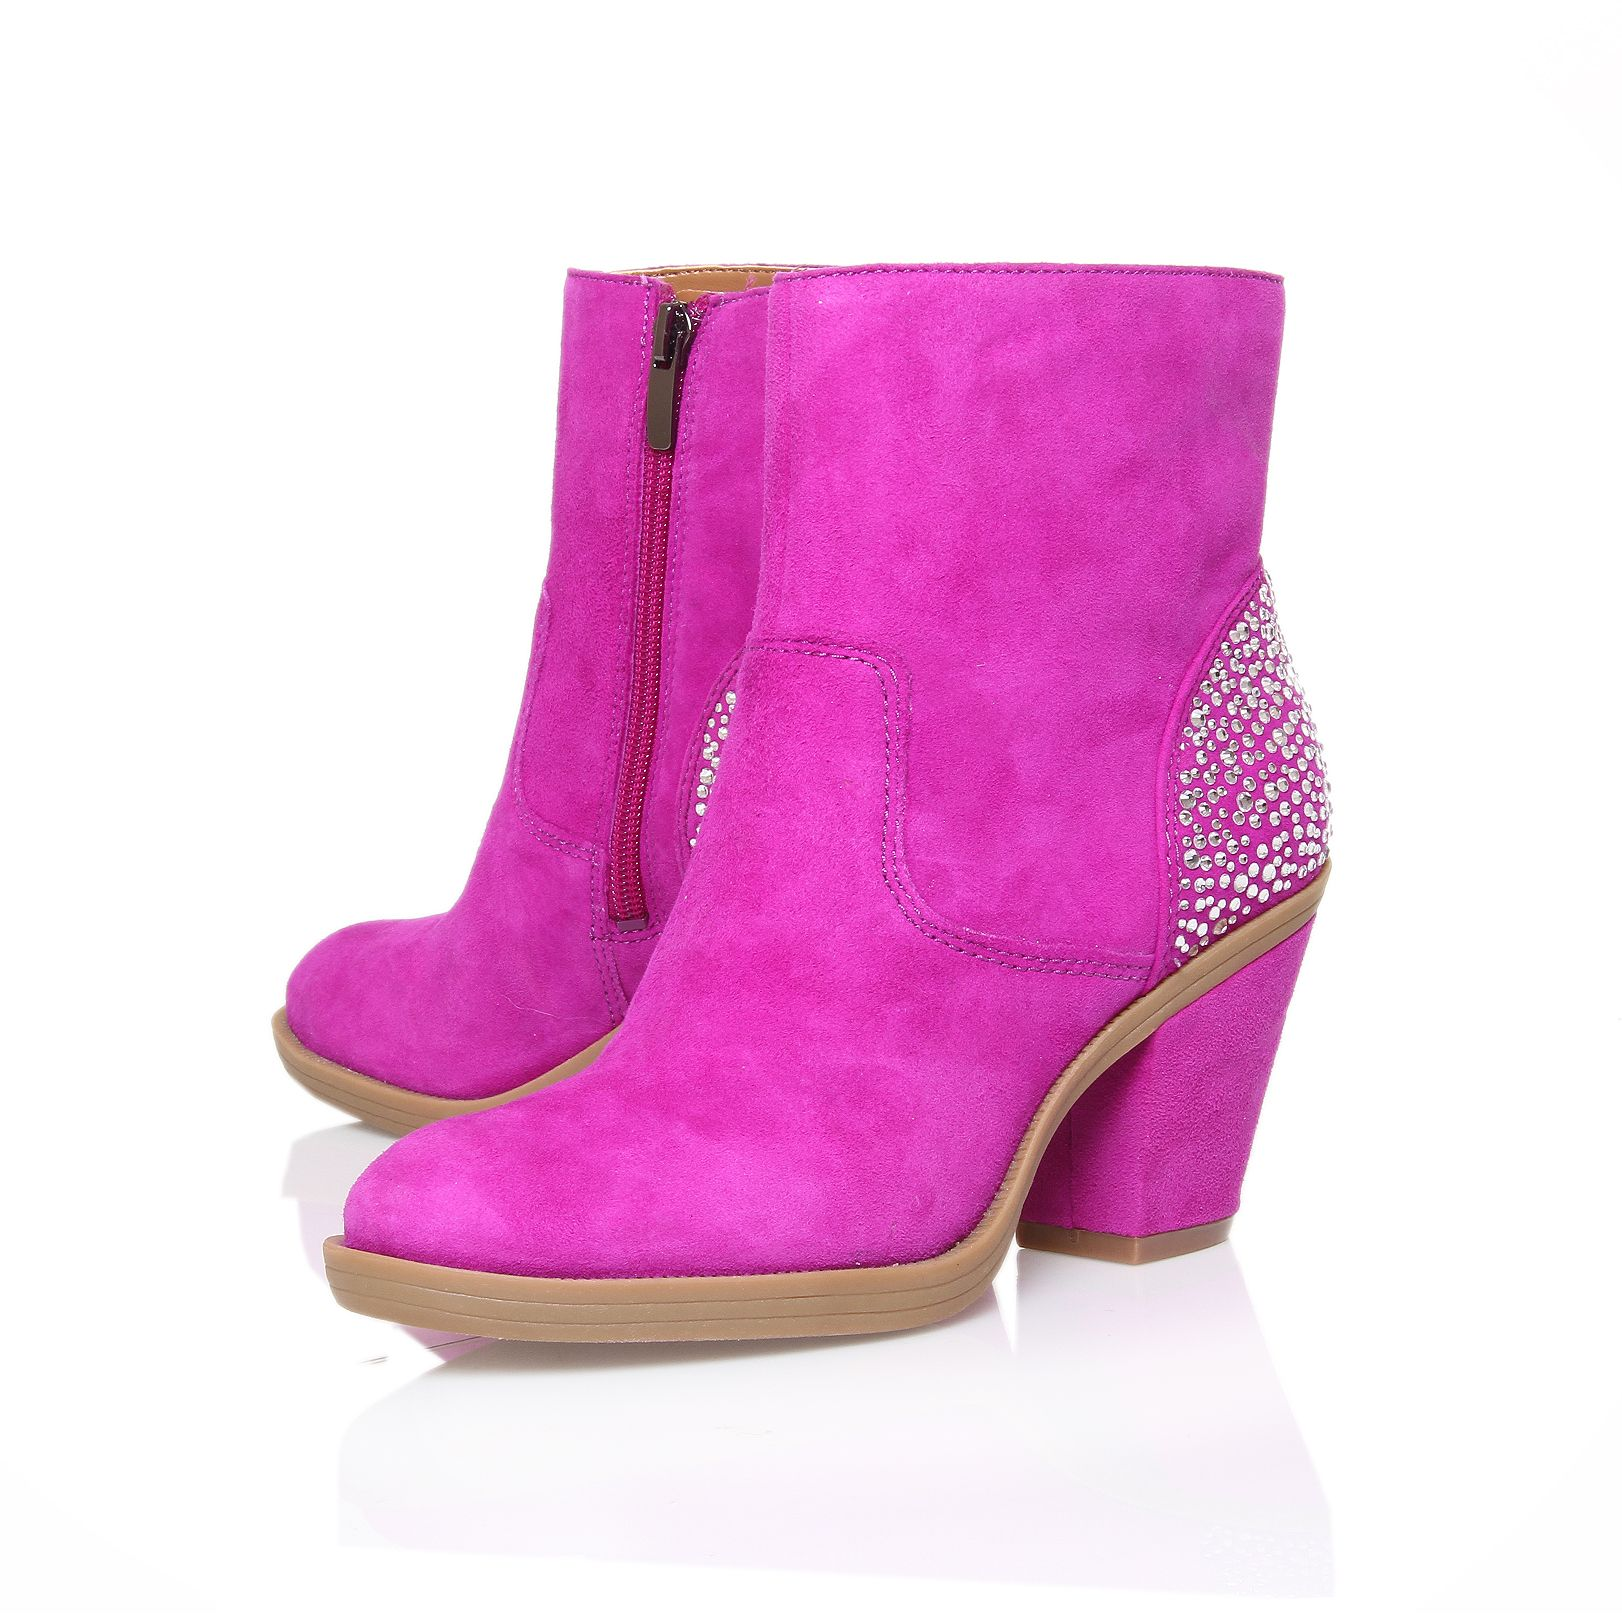 Emzy Block Heeled Ankle Boots